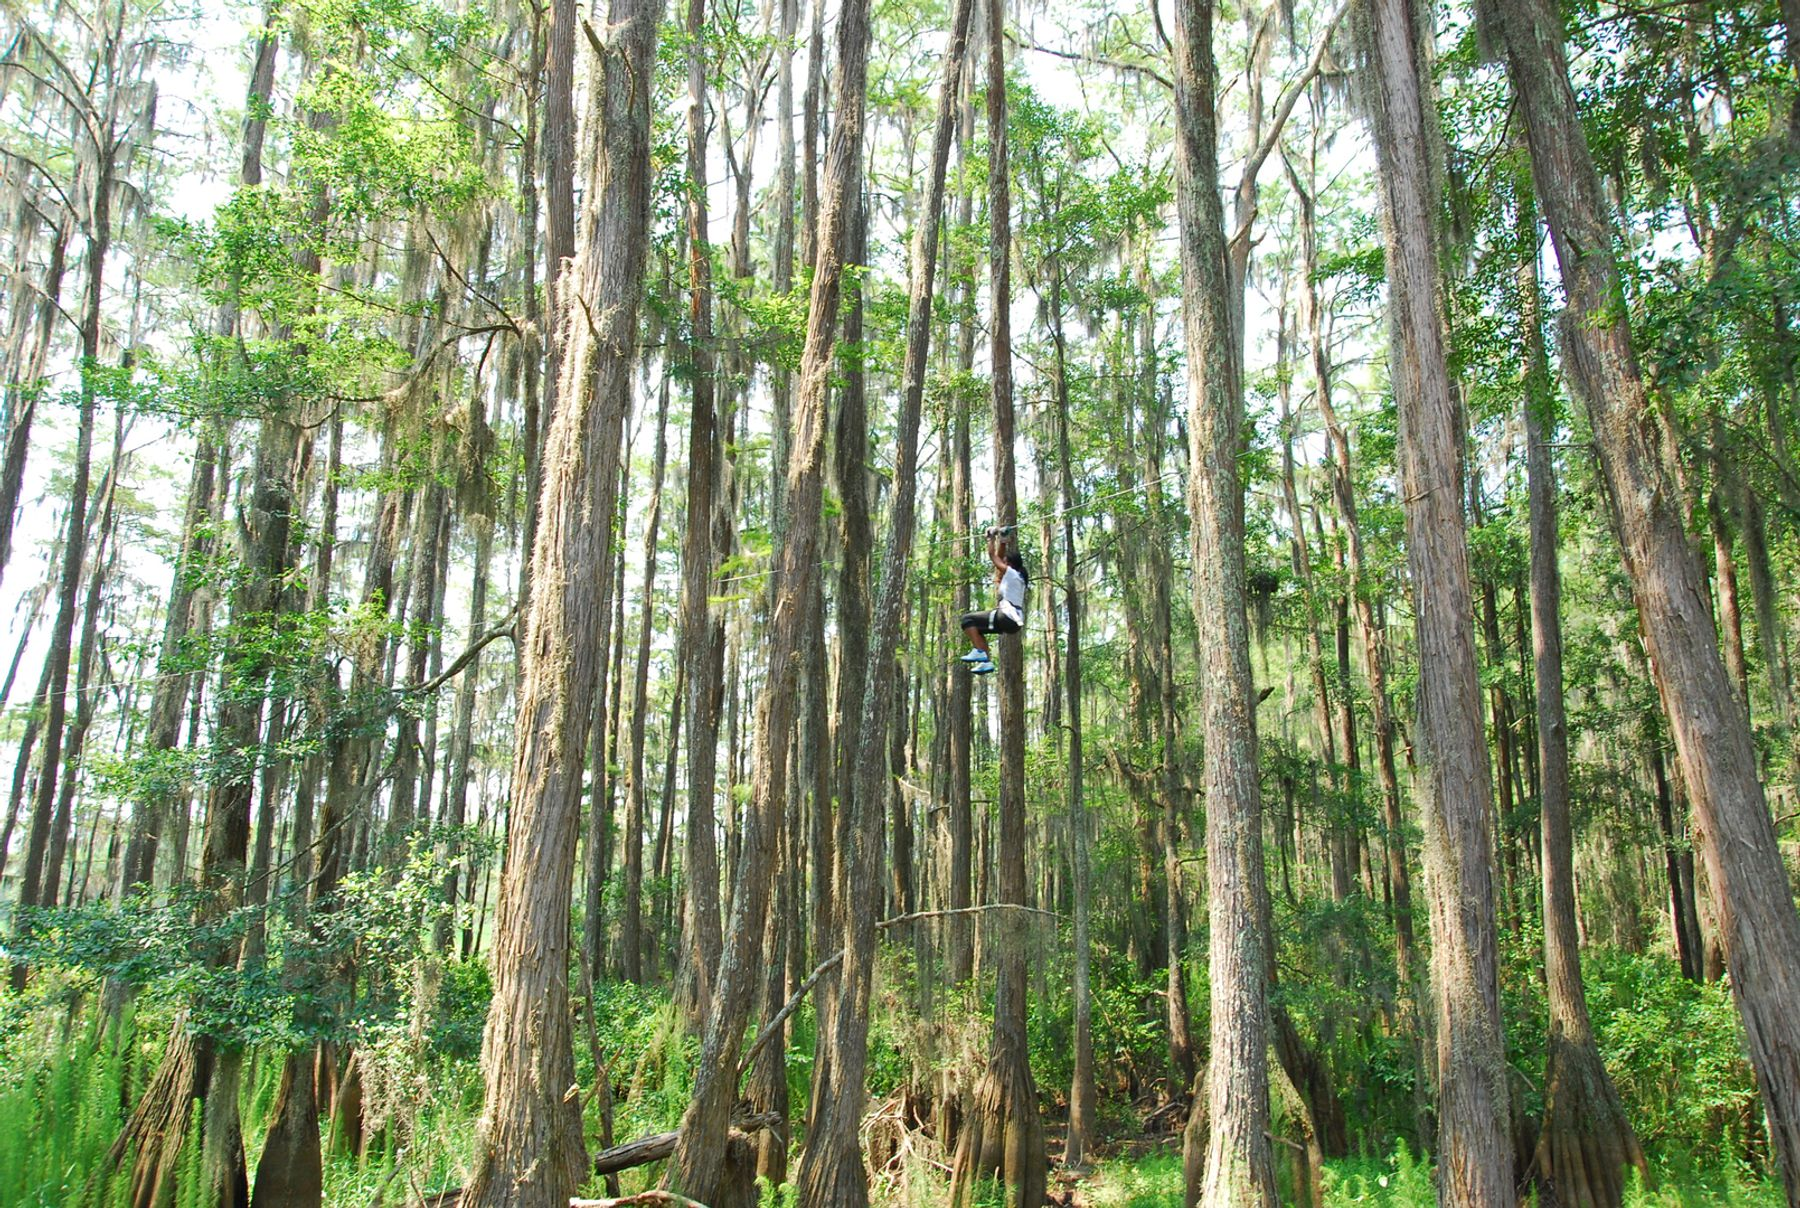 Zipline through the trees in Tallahassee